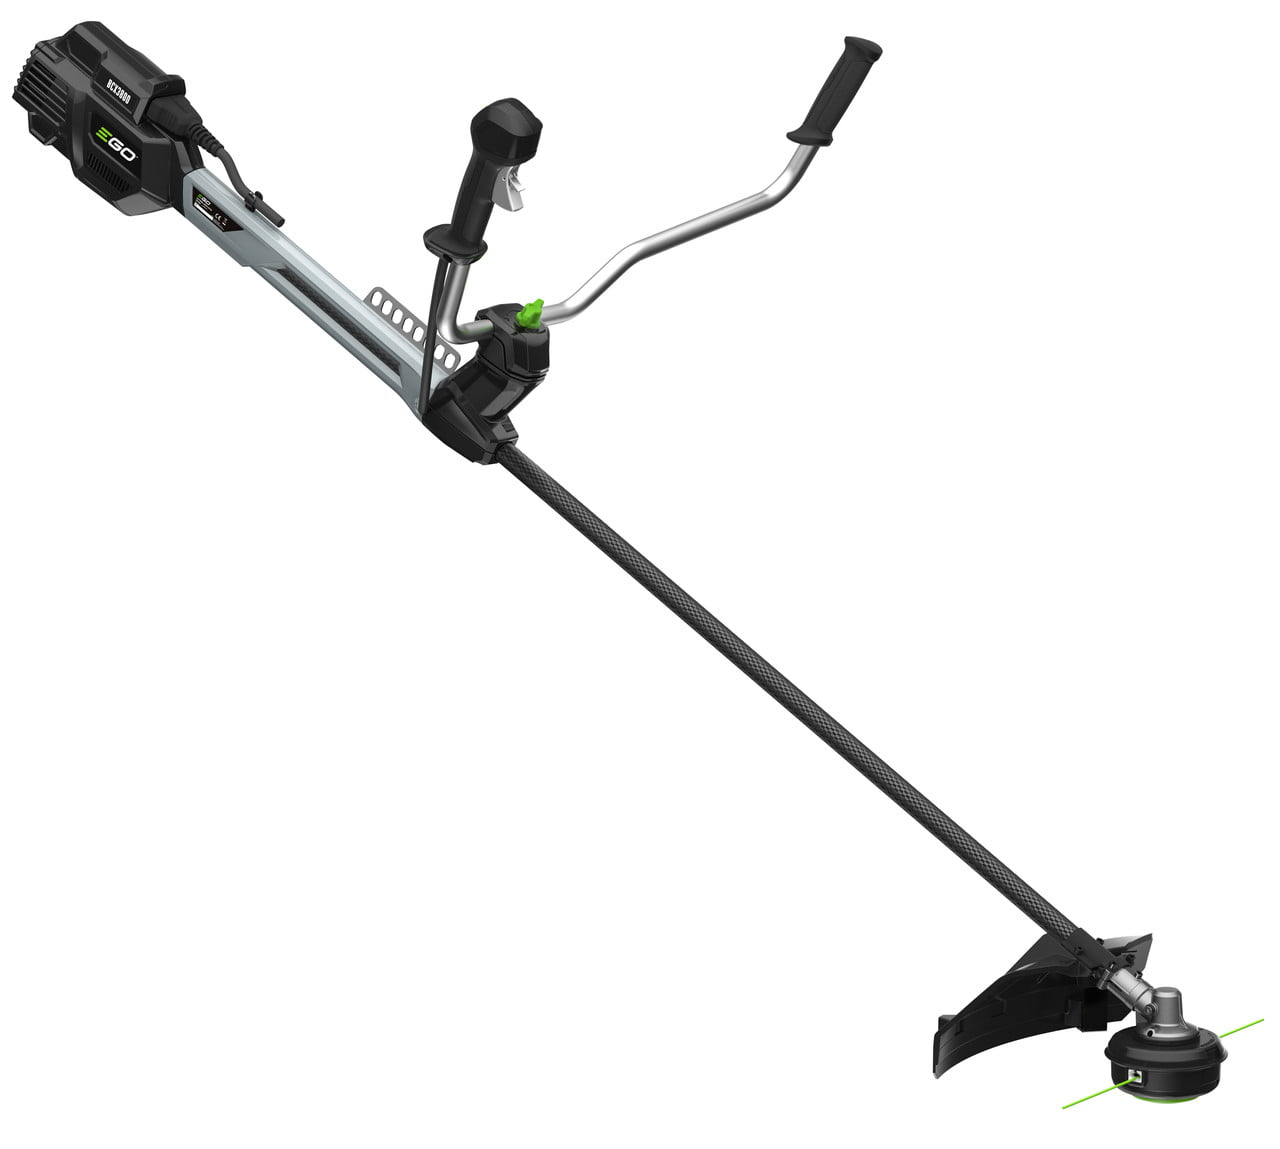 Ego BCX3800 Commercial Cordless Grass Trimmer